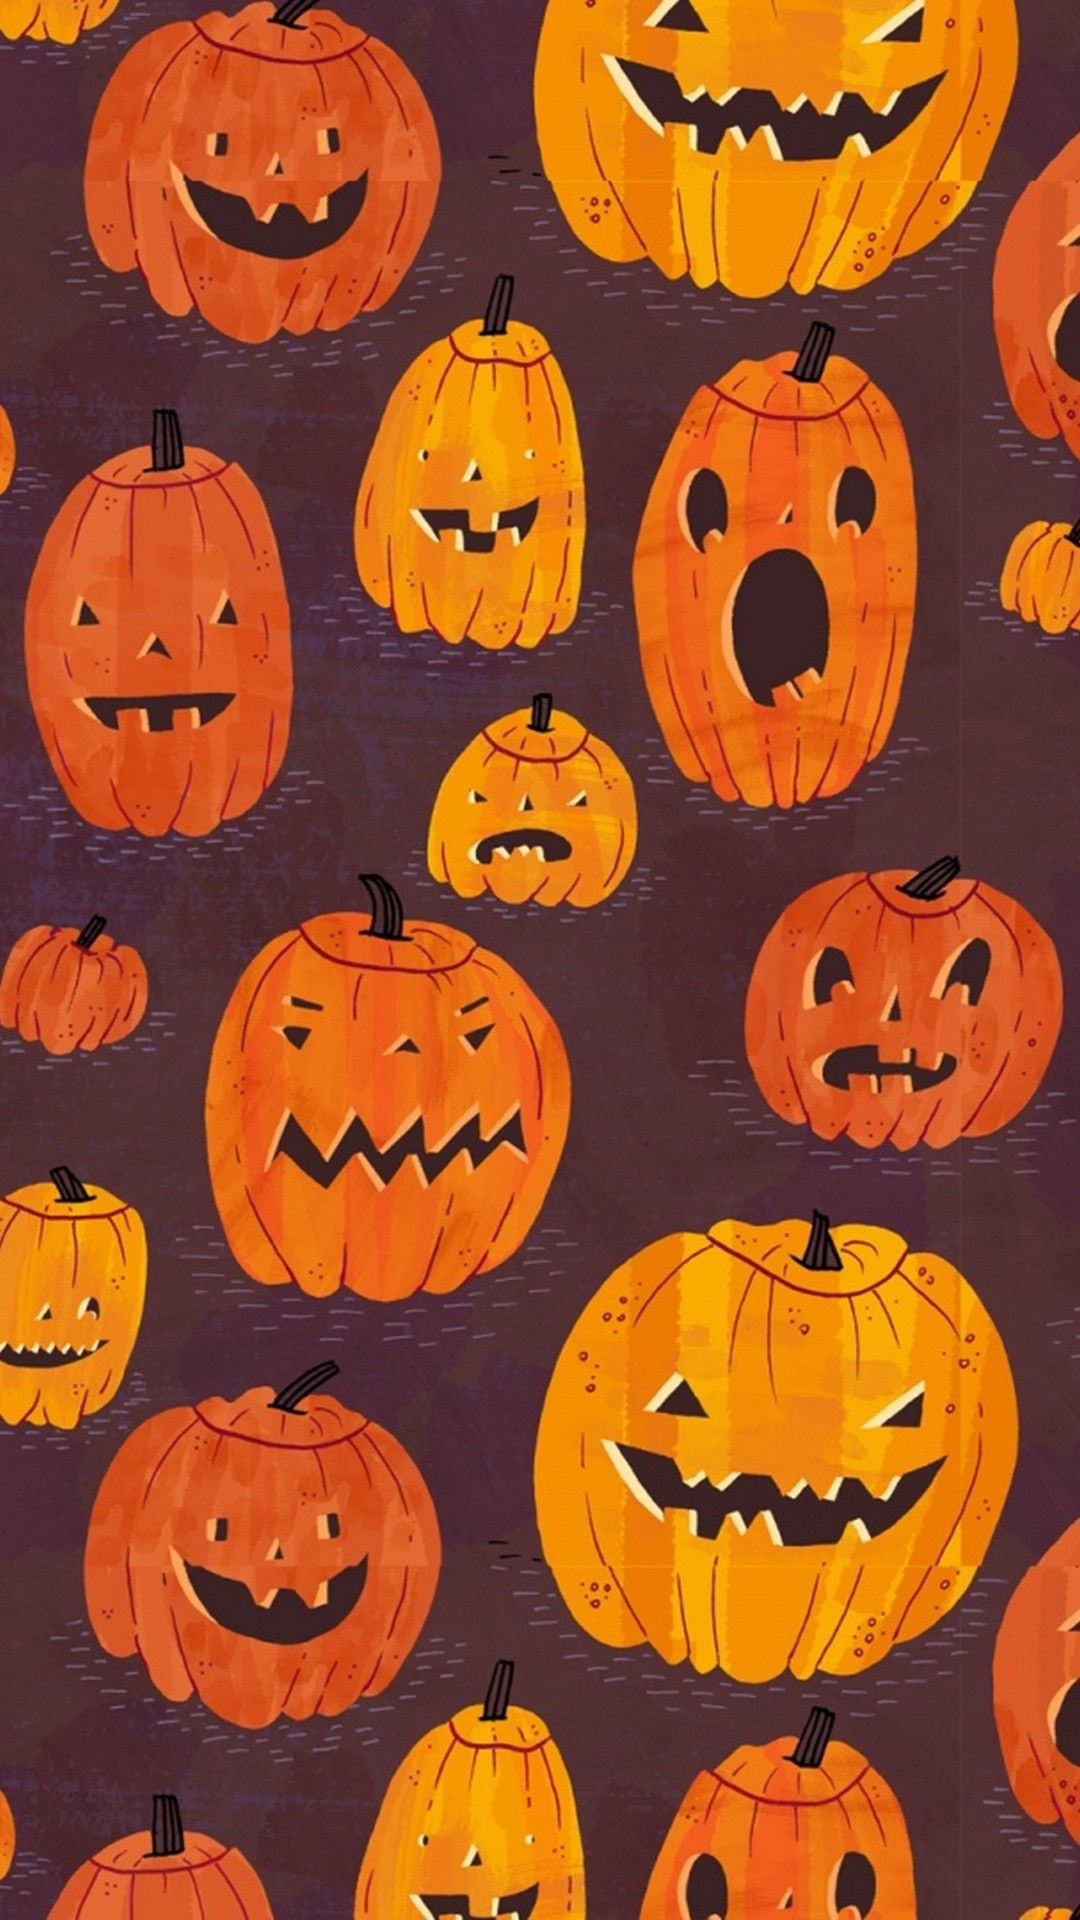 Iphone Halloween Wallpaper Pumpkin wallpaper, Halloween